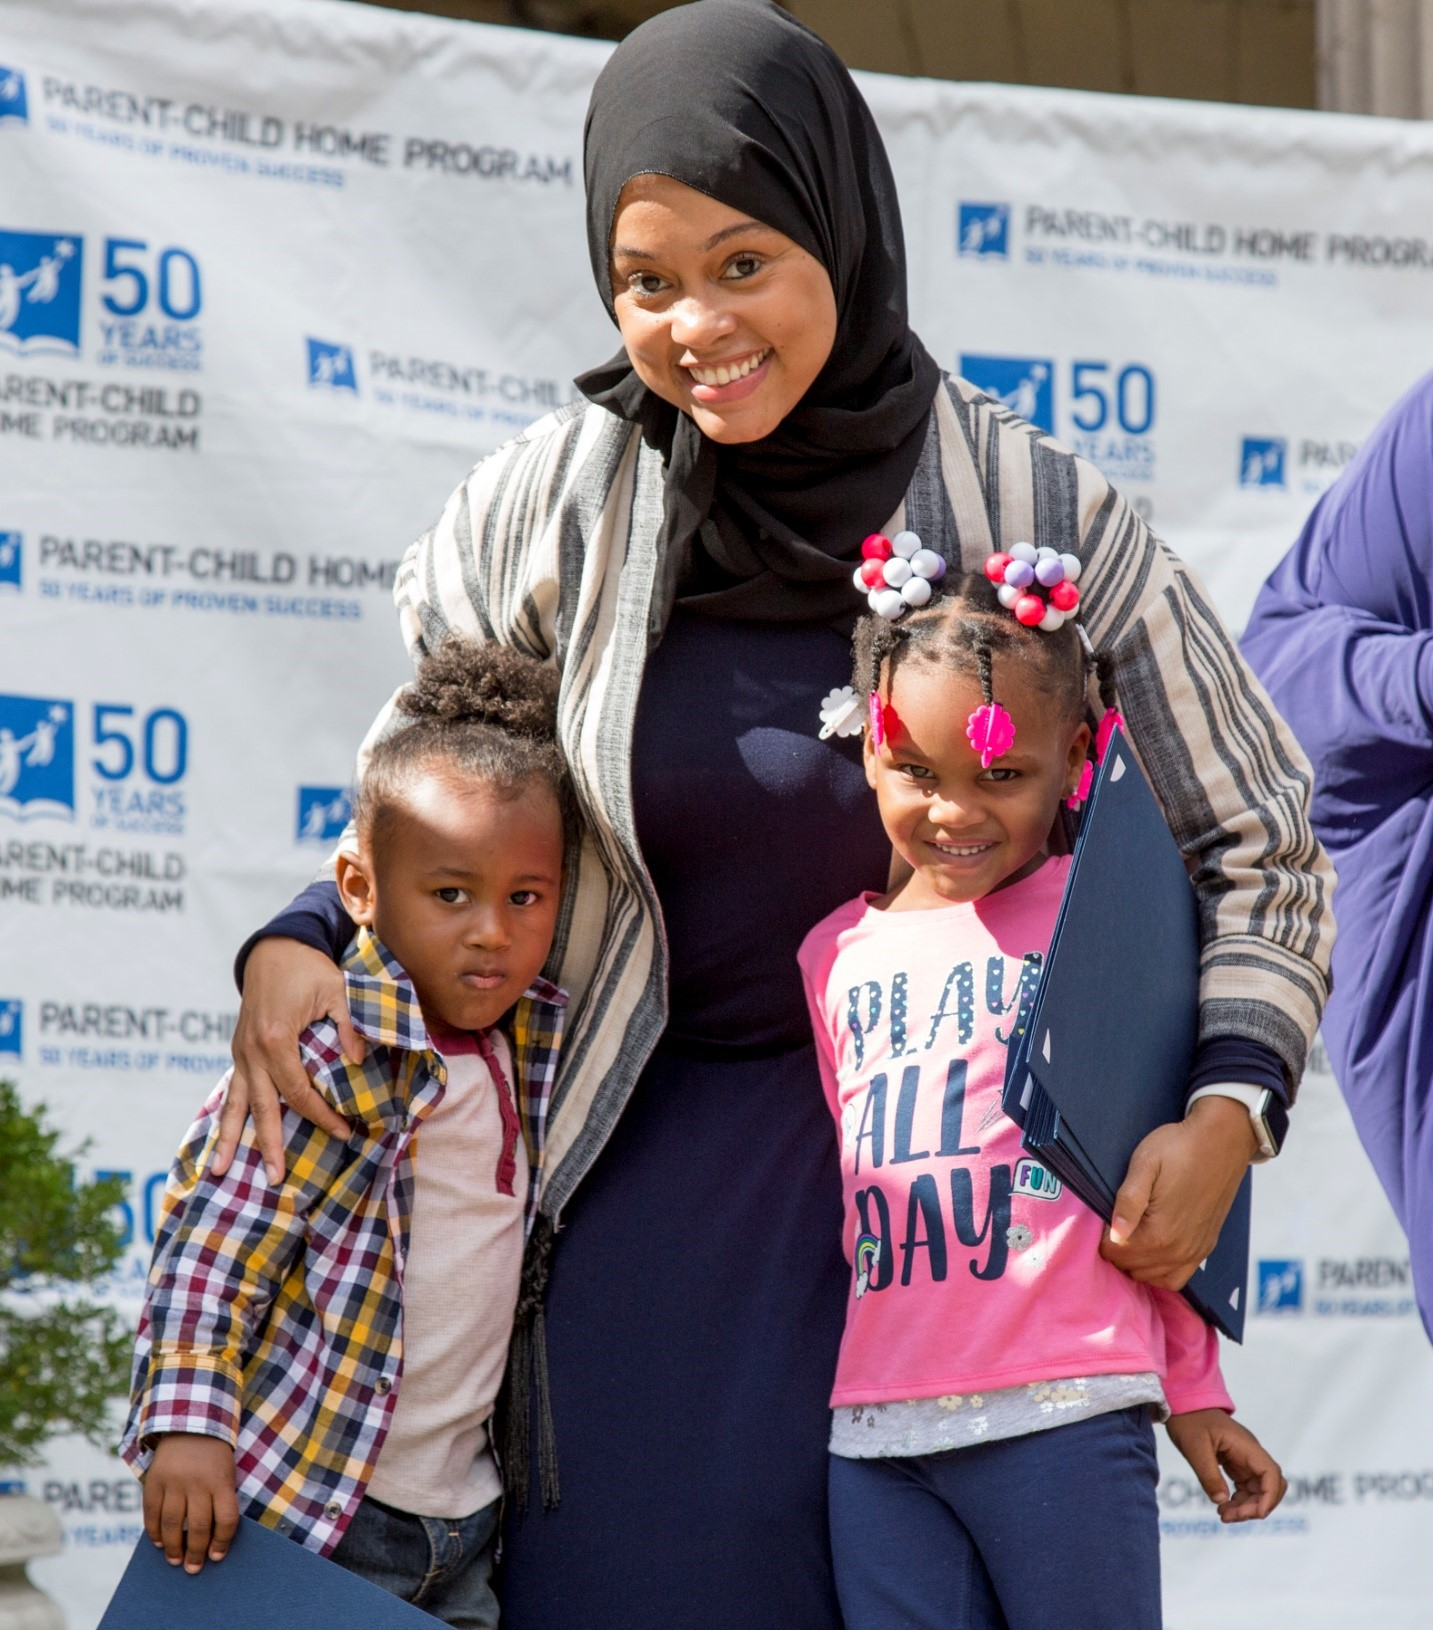 Mother in hijab reads to two children (Parent-Child Home Program)